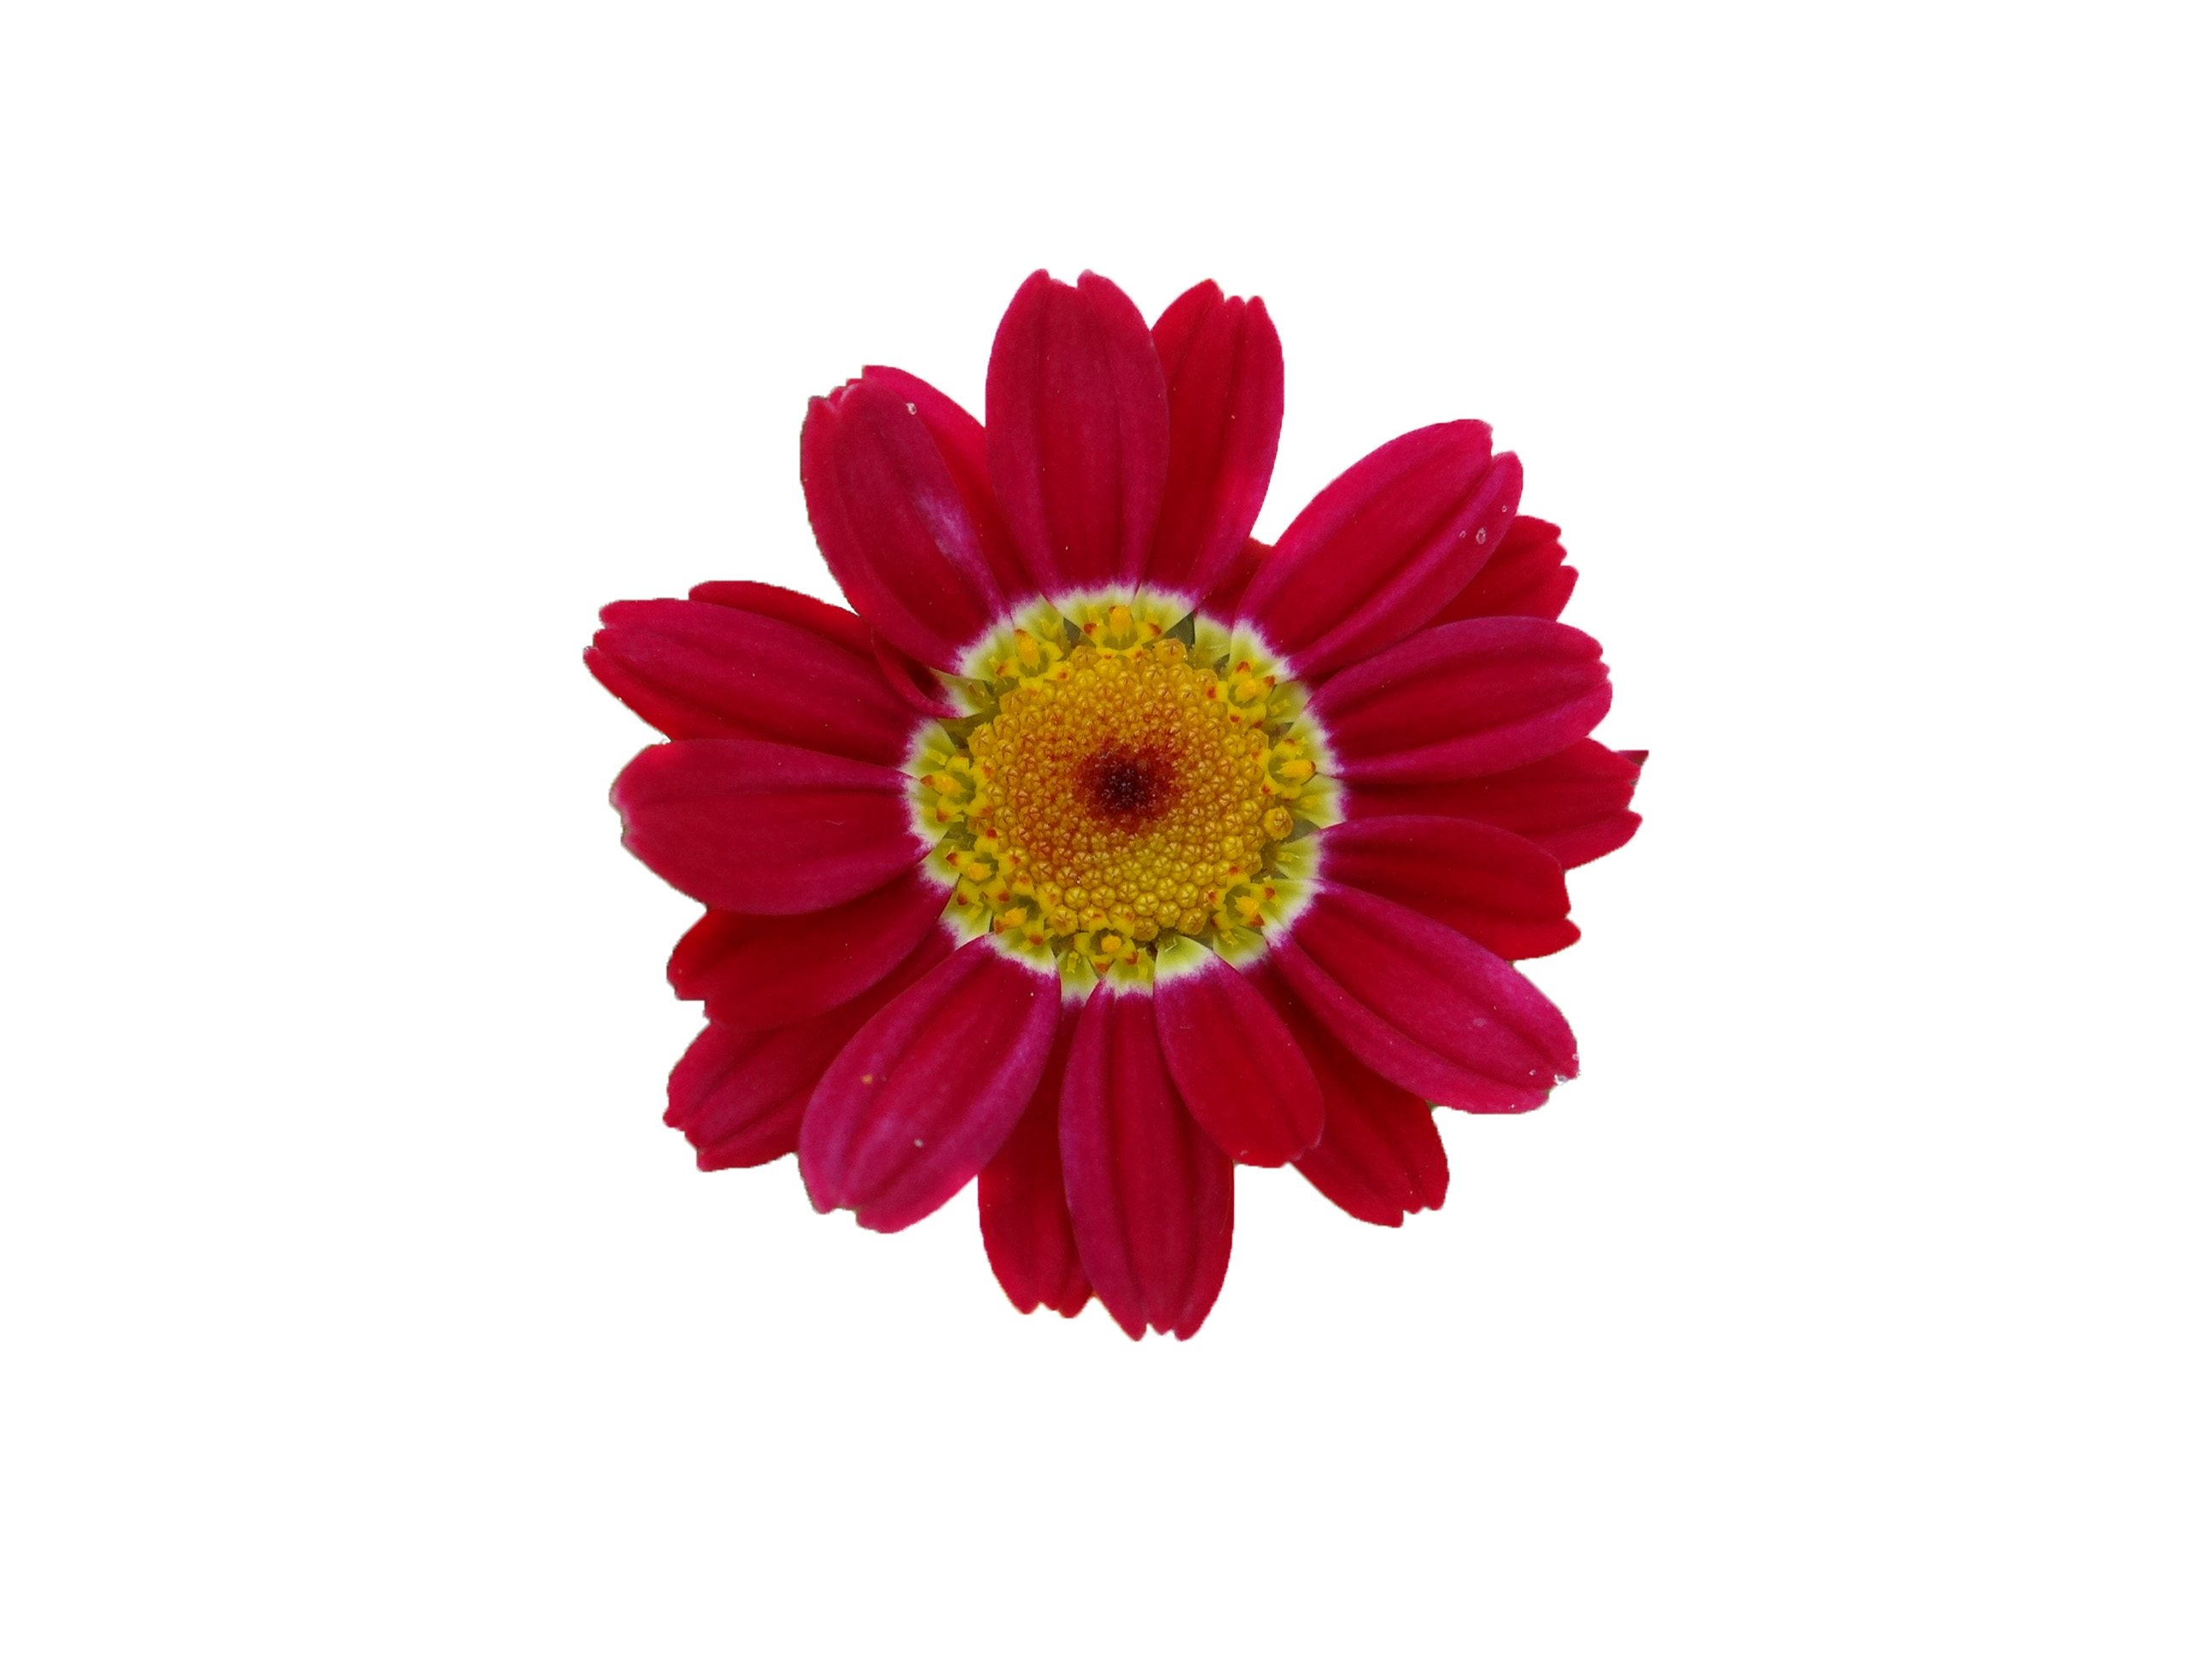 Red flower, Flower, Nature, Red, HQ Photo